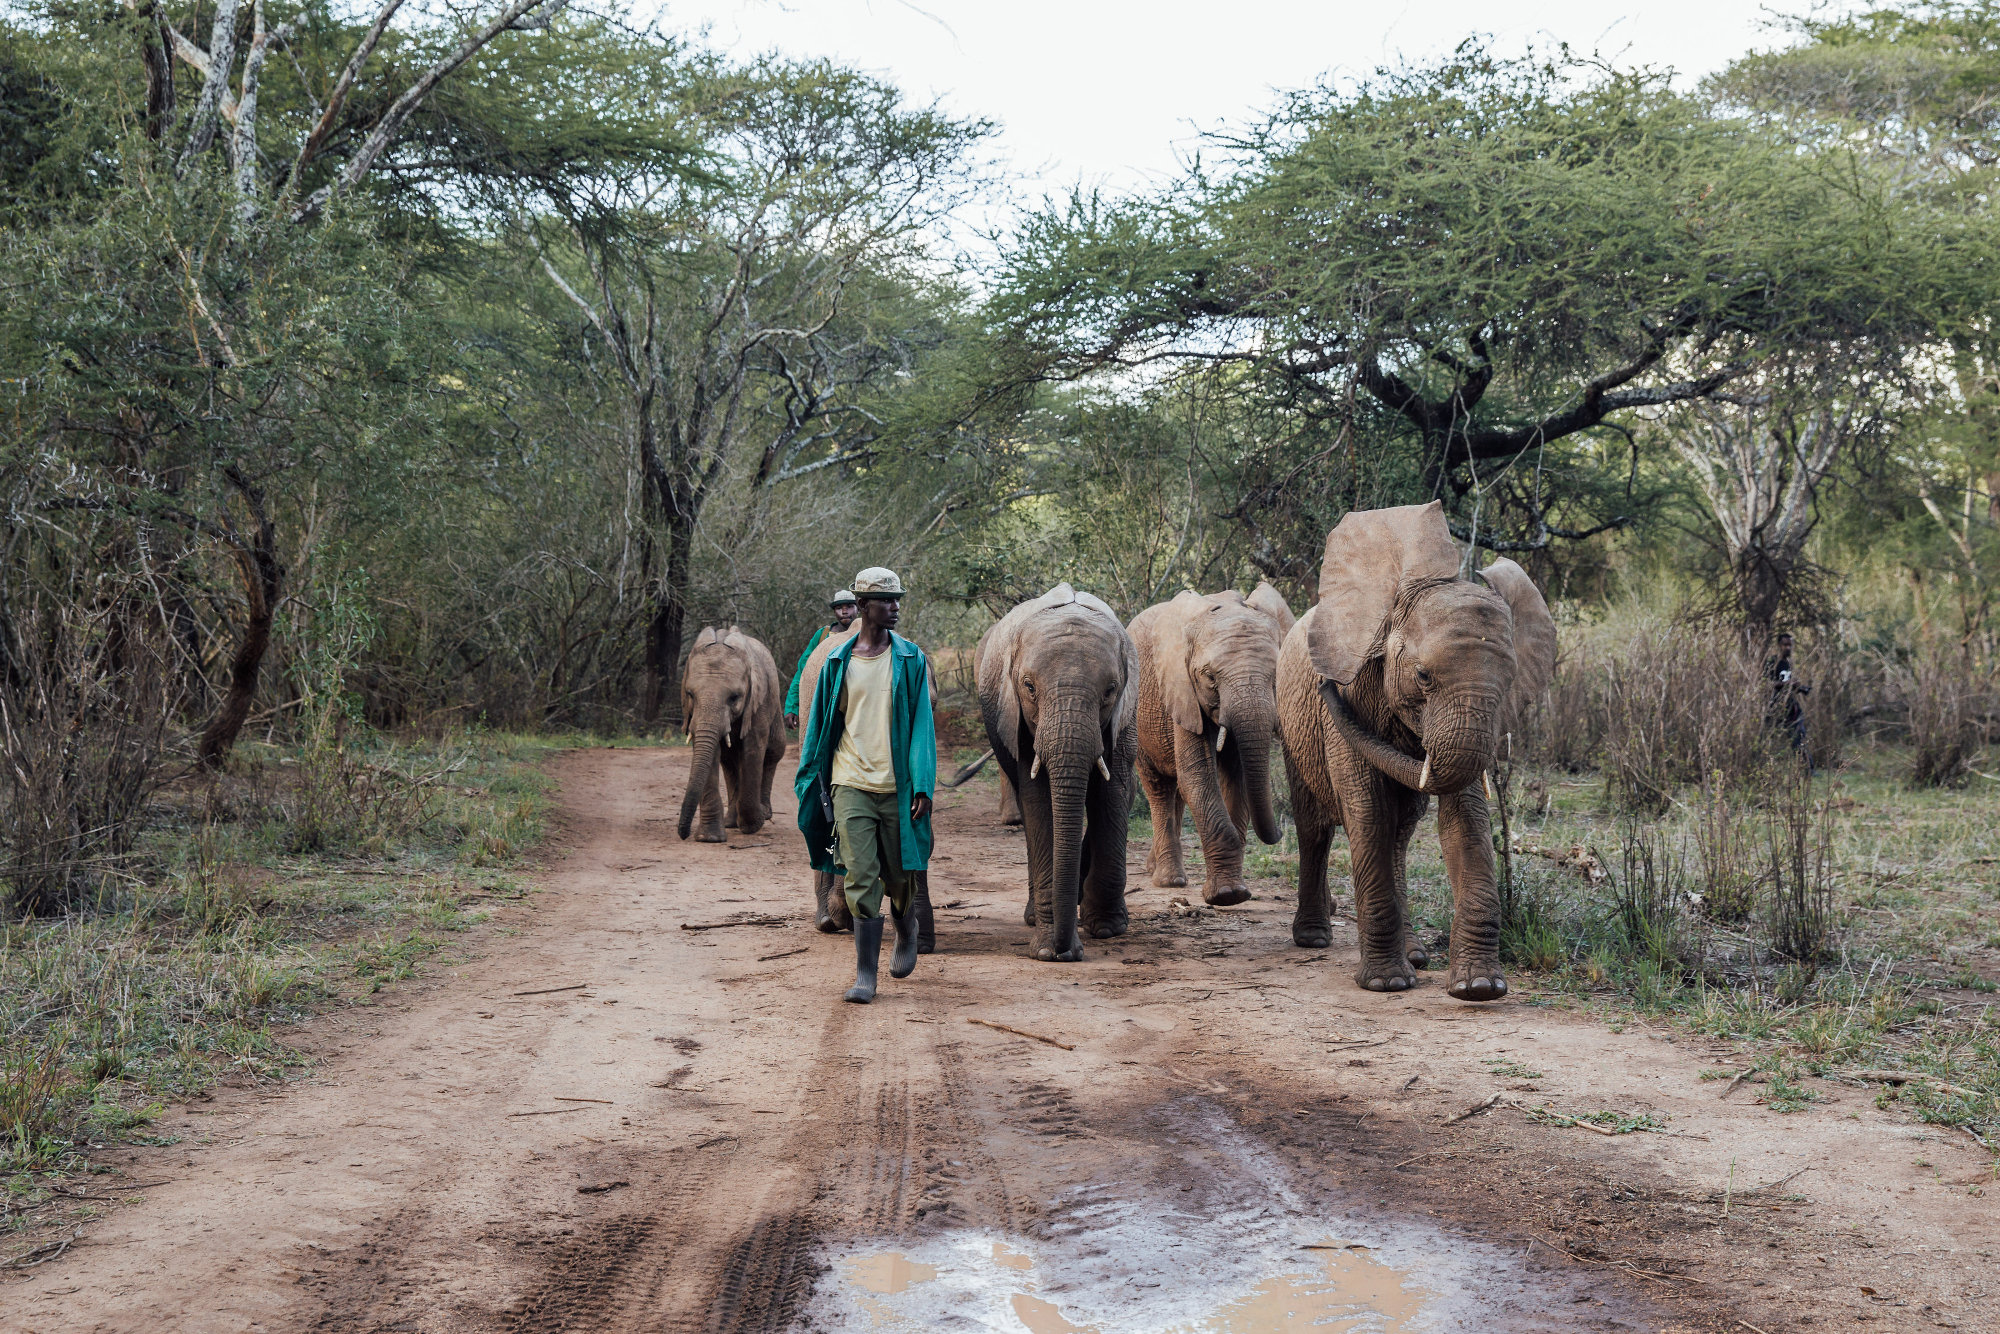 Elephants exercise with their keepers